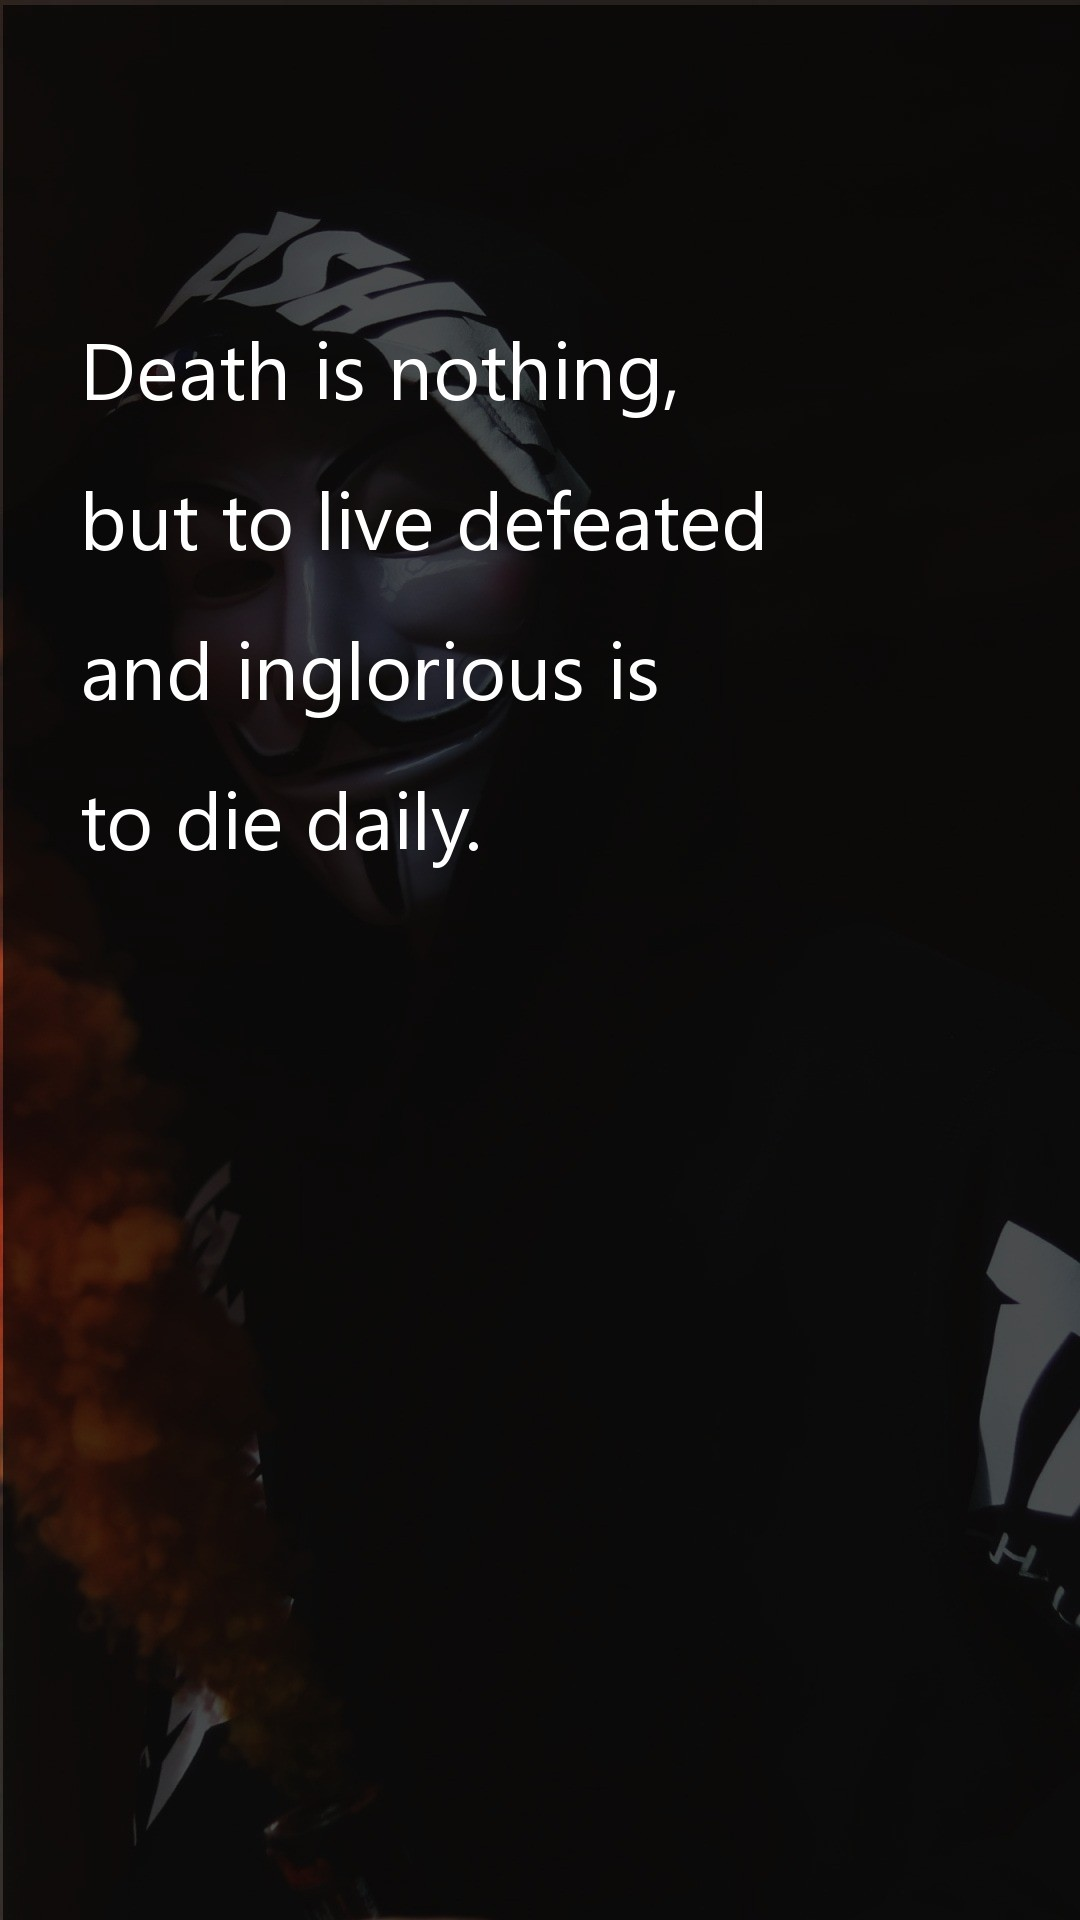 Death is nothing